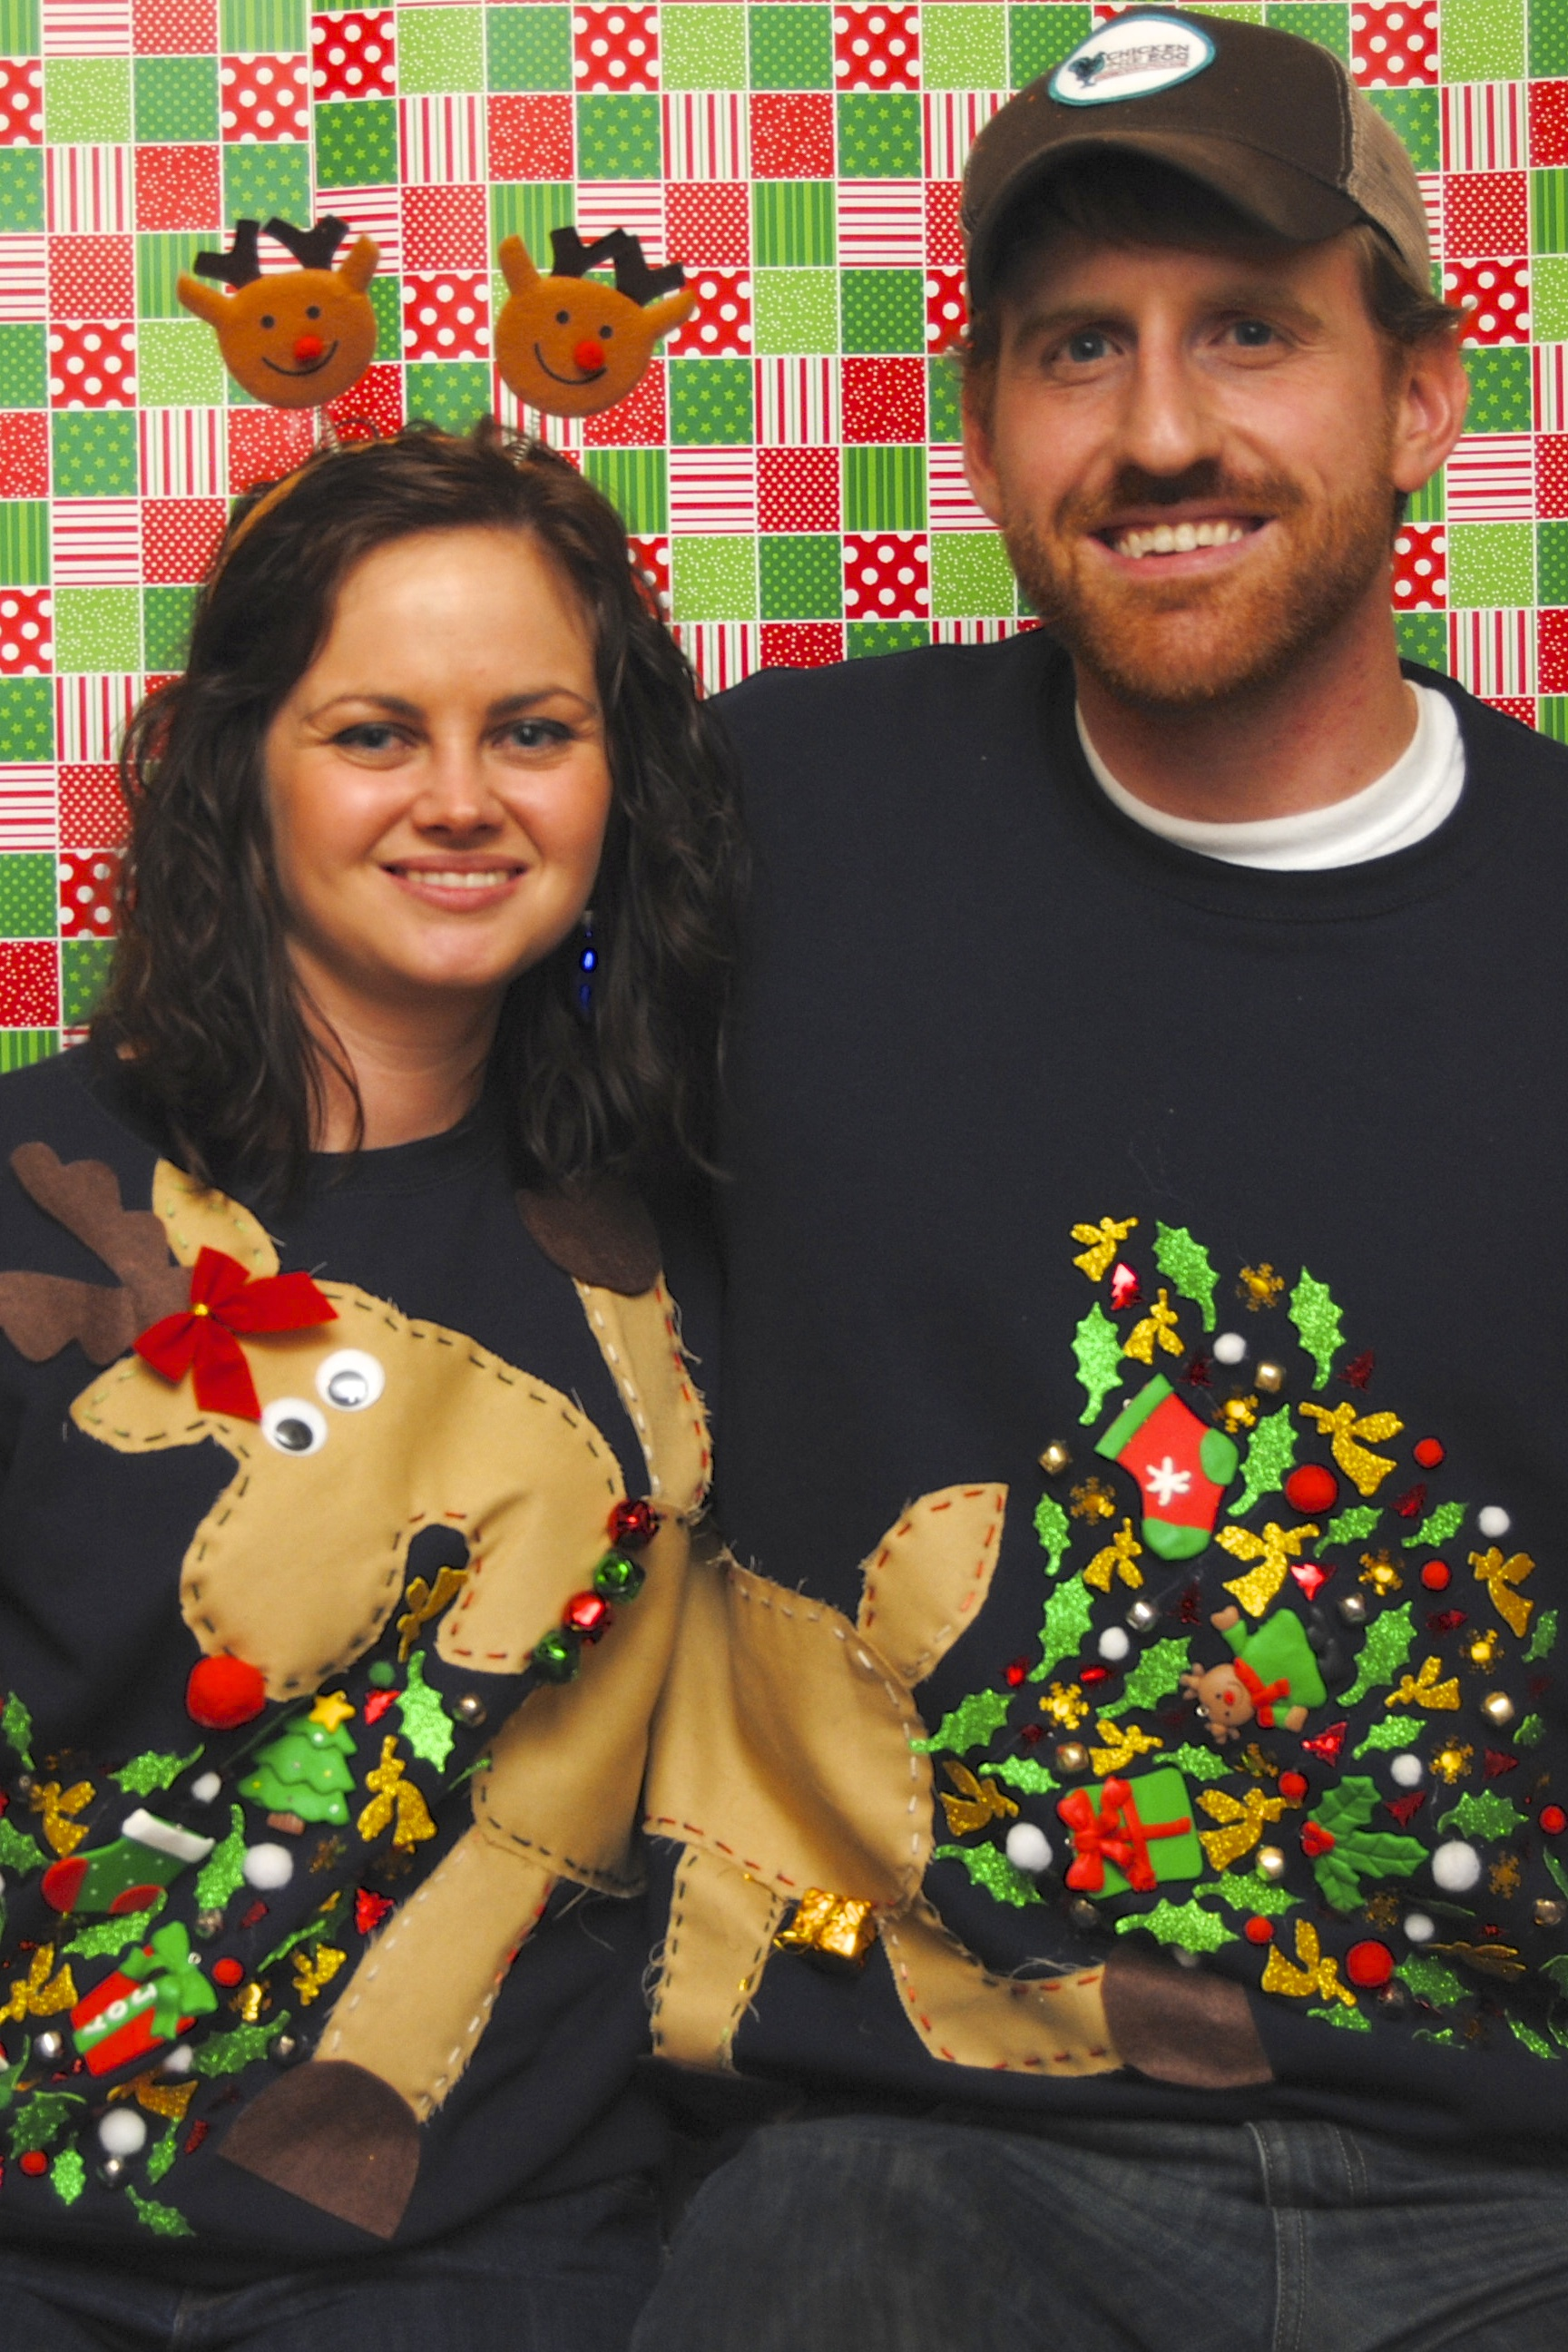 Couples Christmas Sweaters.Funny Photo Of The Day For Wednesday 24 December 2014 From